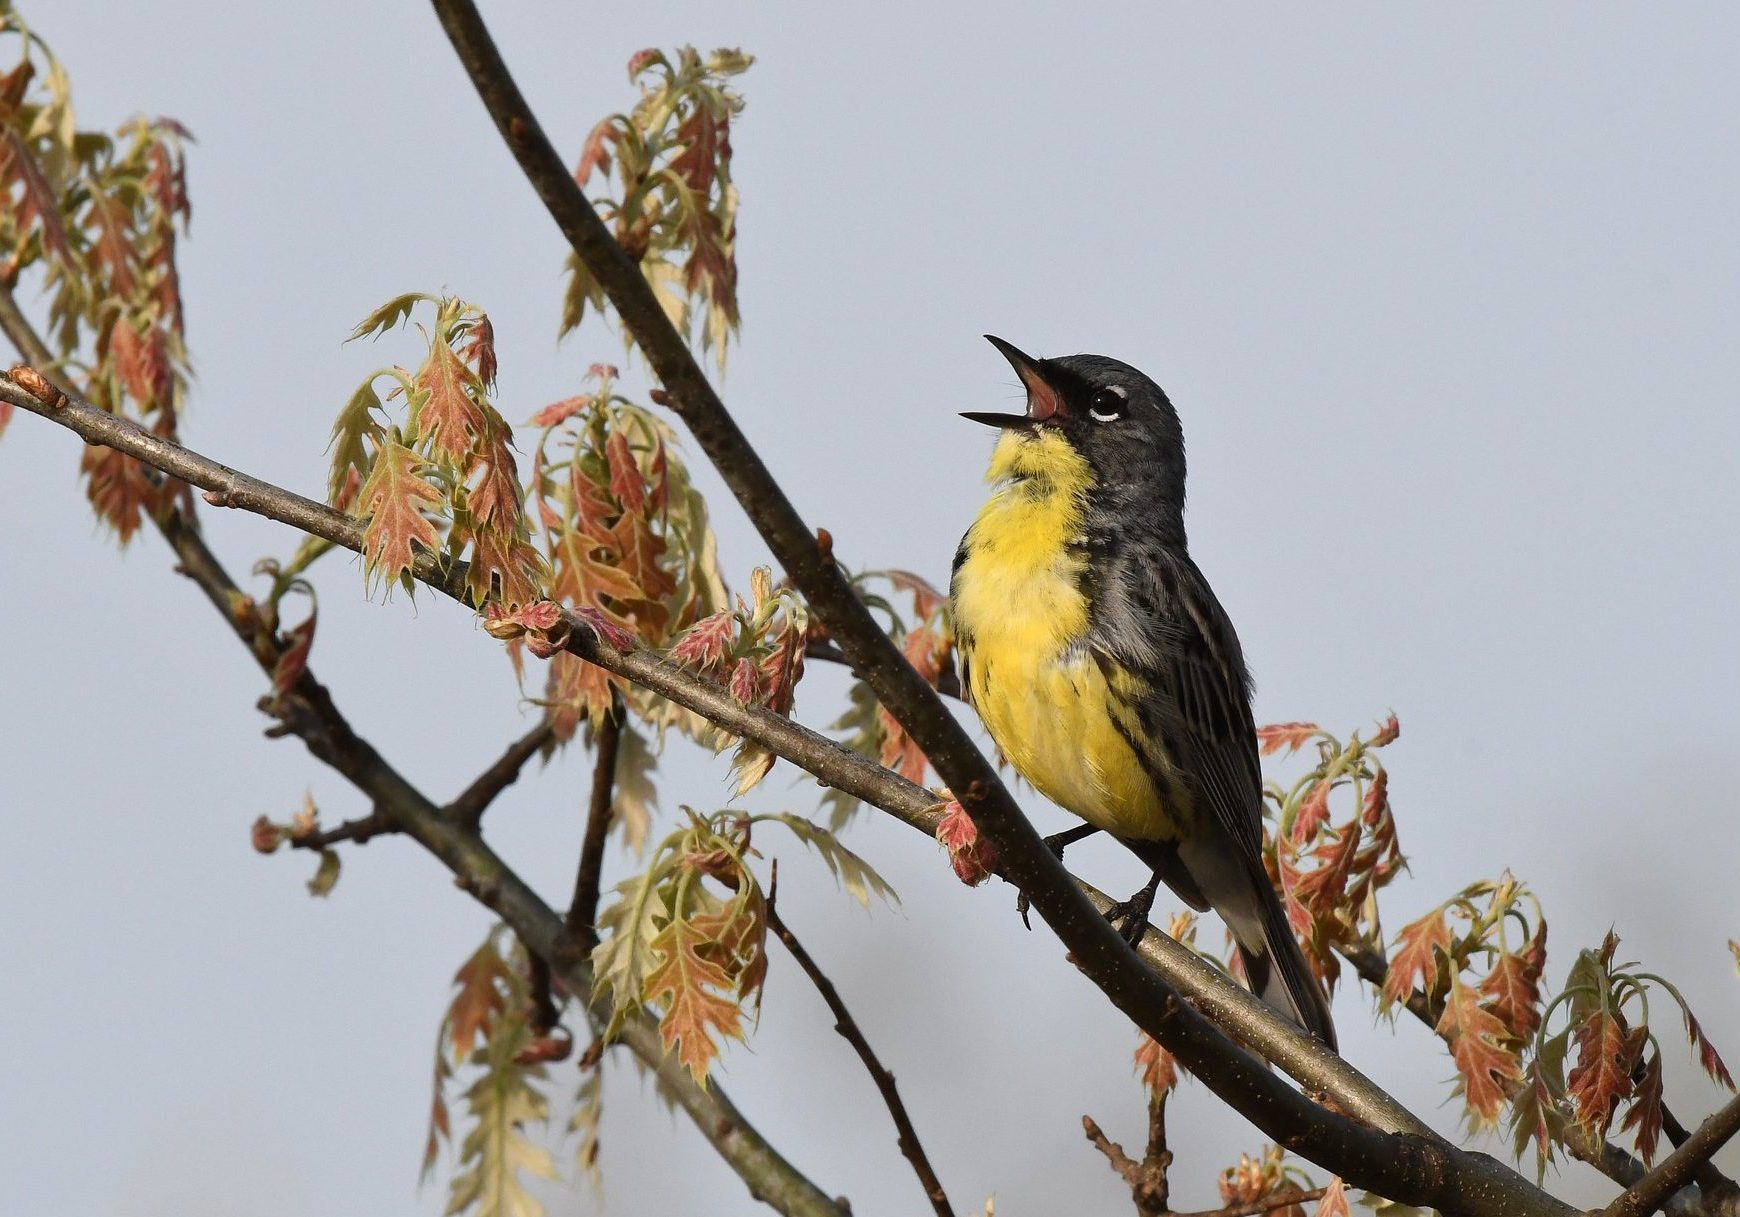 The Kirtland's Warbler. Photo credit: Jim Hudgins/USFWS